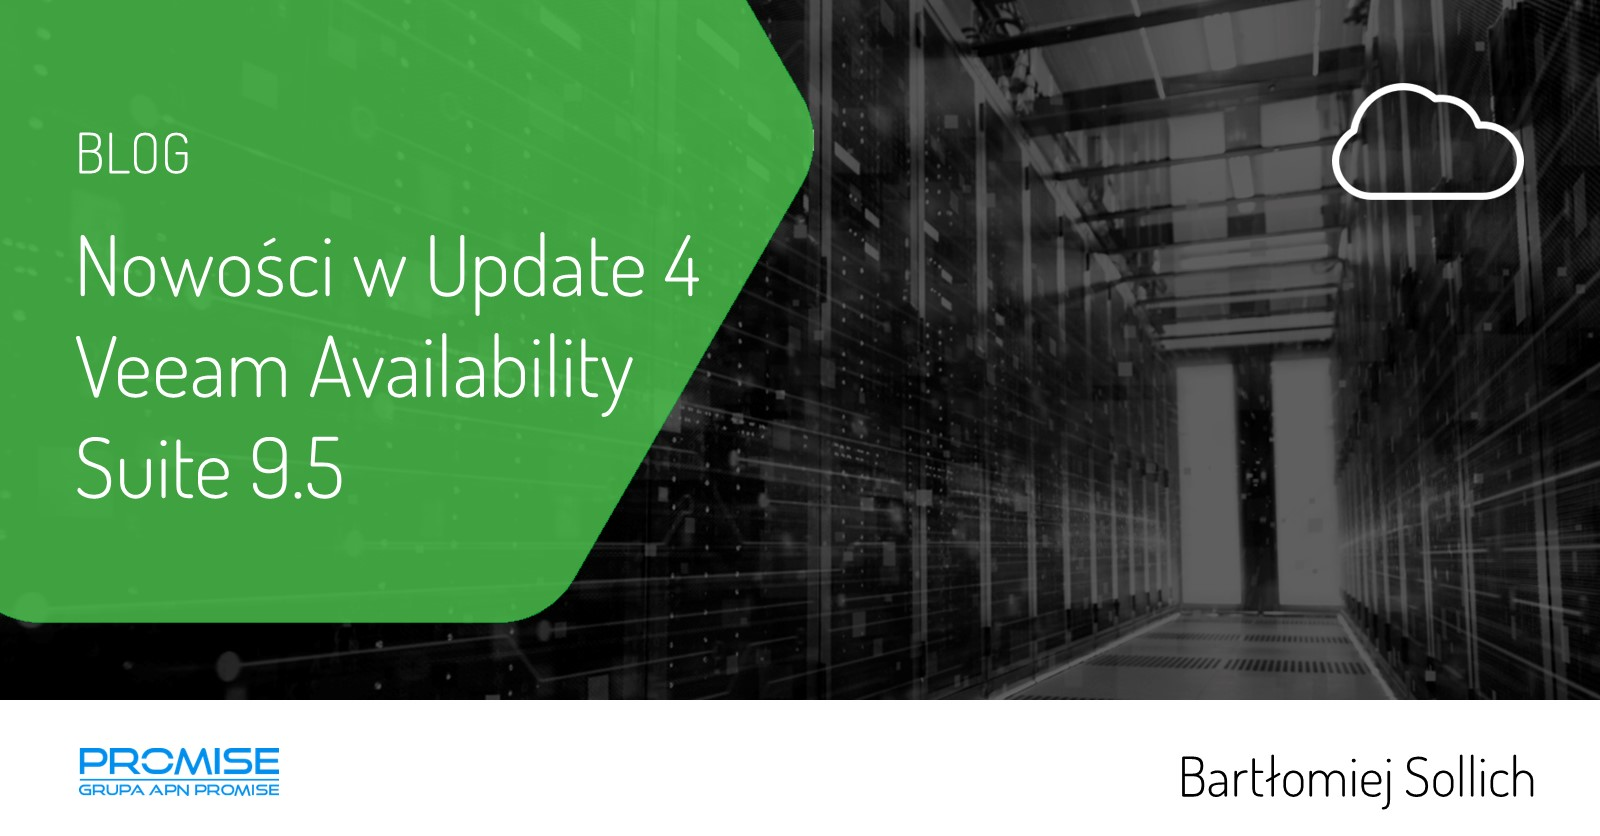 Update 4 Veeam Availability Suit